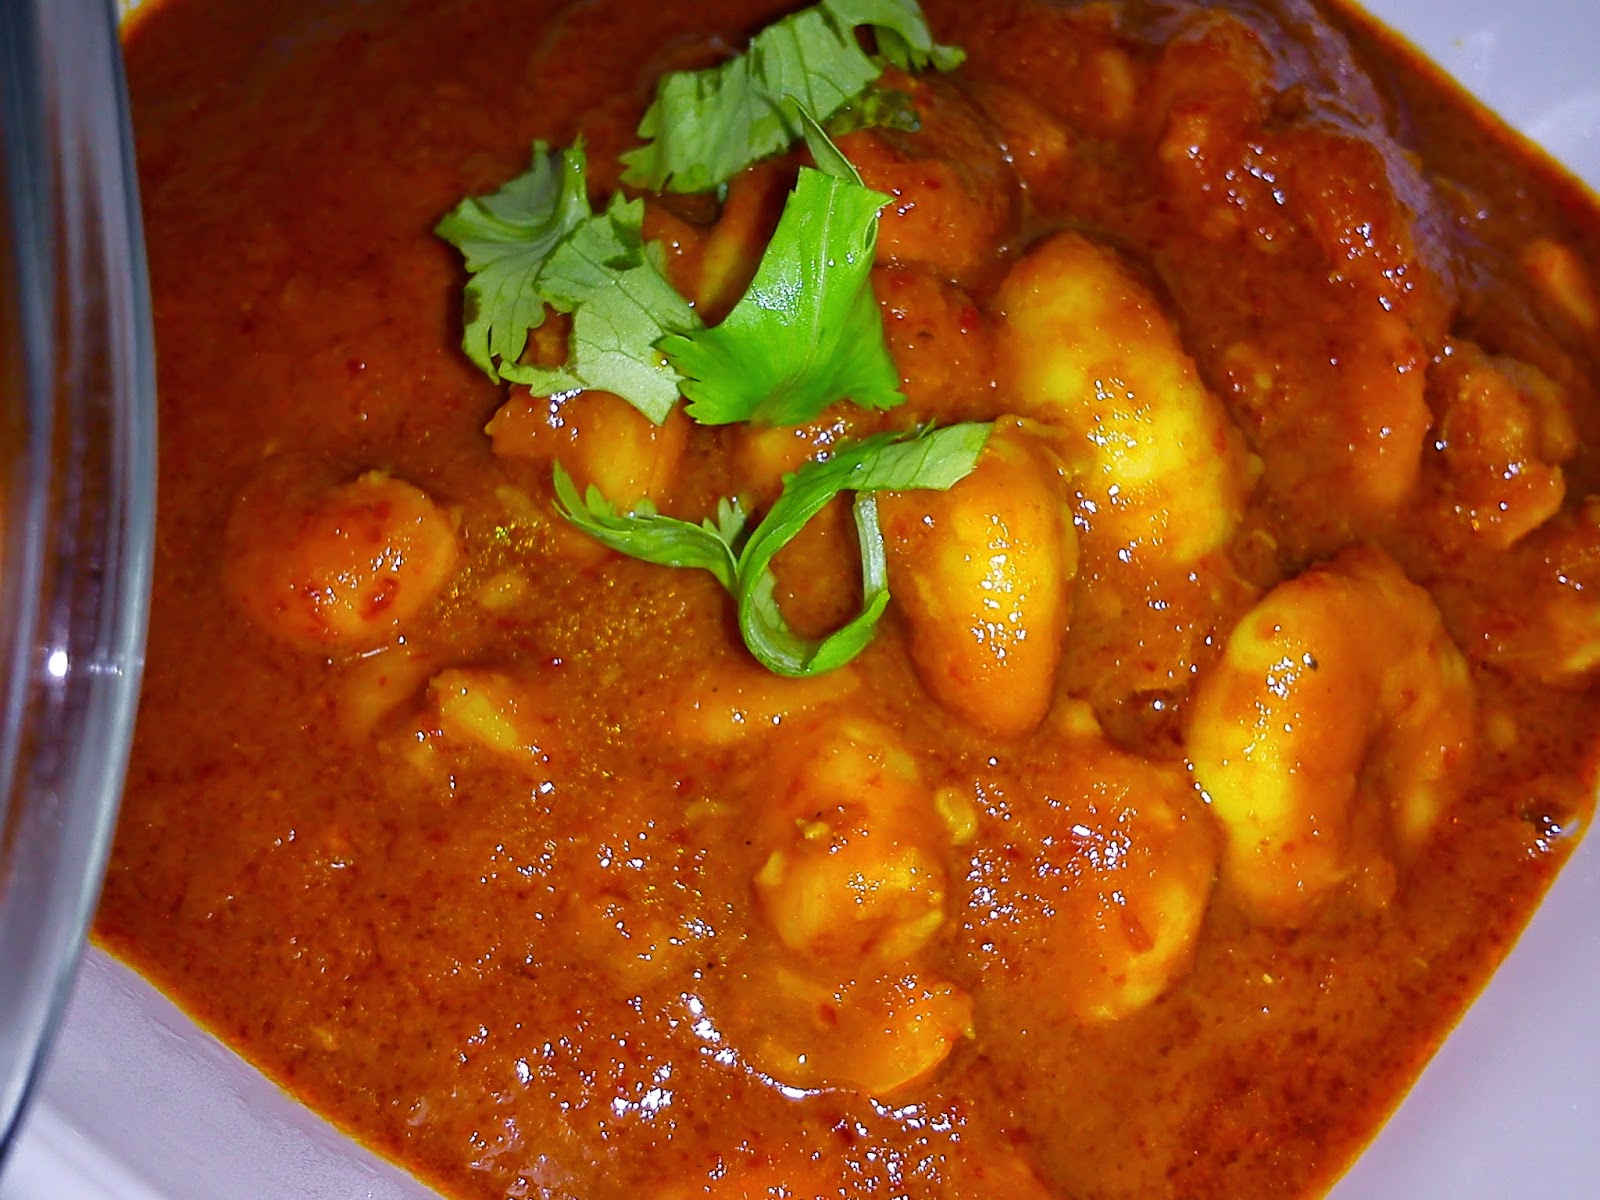 Cooking Pleasure: NYONYA SAMBAL UDANG [PRAWN SAMBAL]